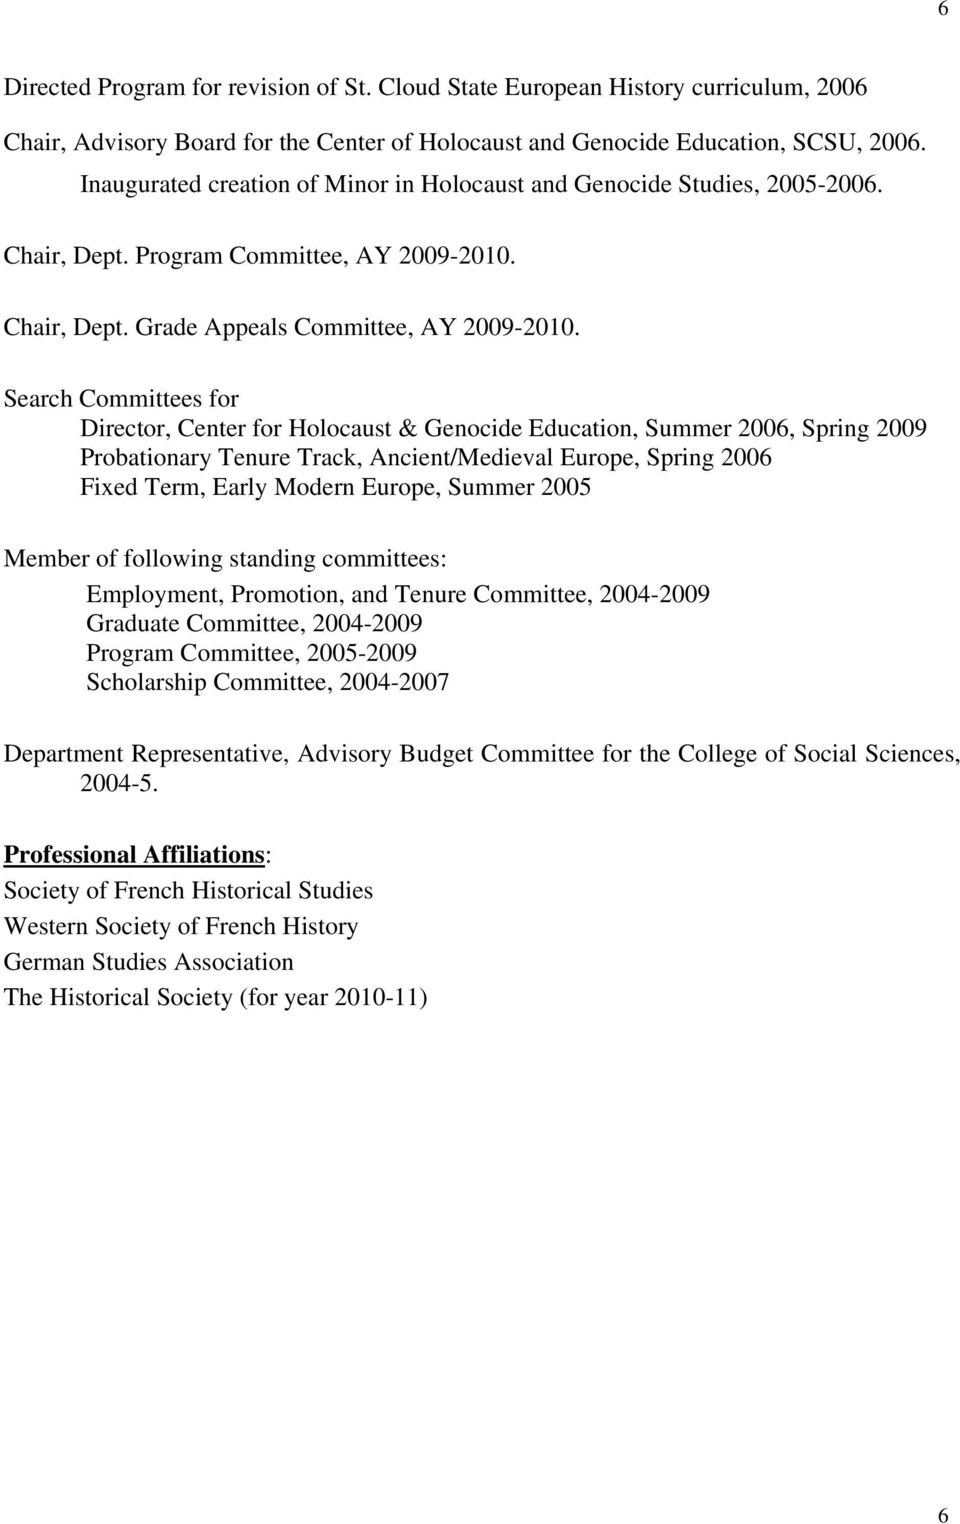 Search Committees for Director, Center for Holocaust & Genocide Education, Summer 2006, Spring 2009 Probationary Tenure Track, Ancient/Medieval Europe, Spring 2006 Fixed Term, Early Modern Europe,